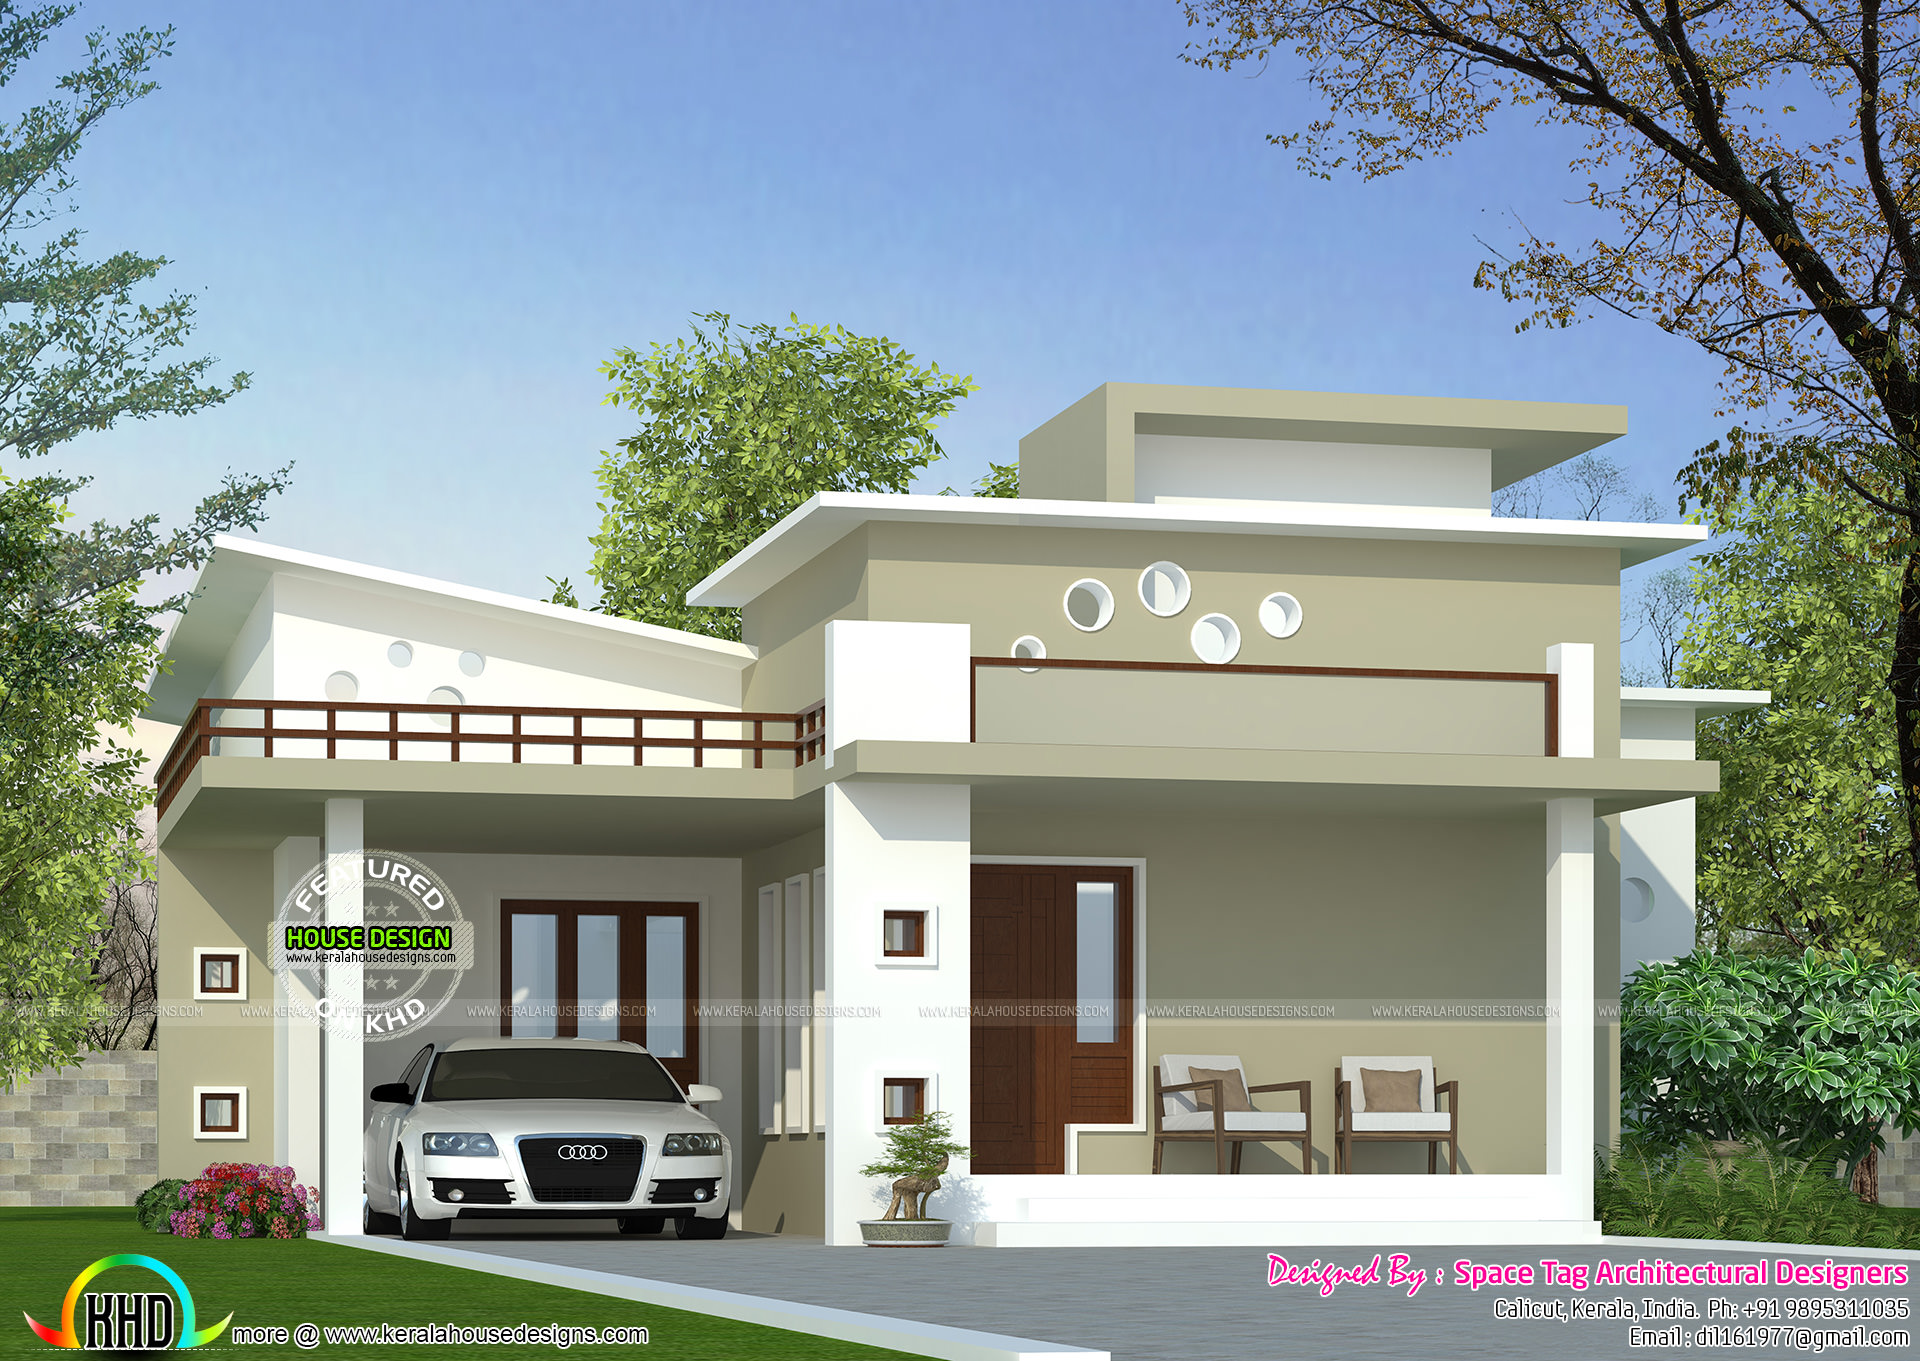 Kerala Style Low Cost Double Storied Home: Kerala Home Design And Floor